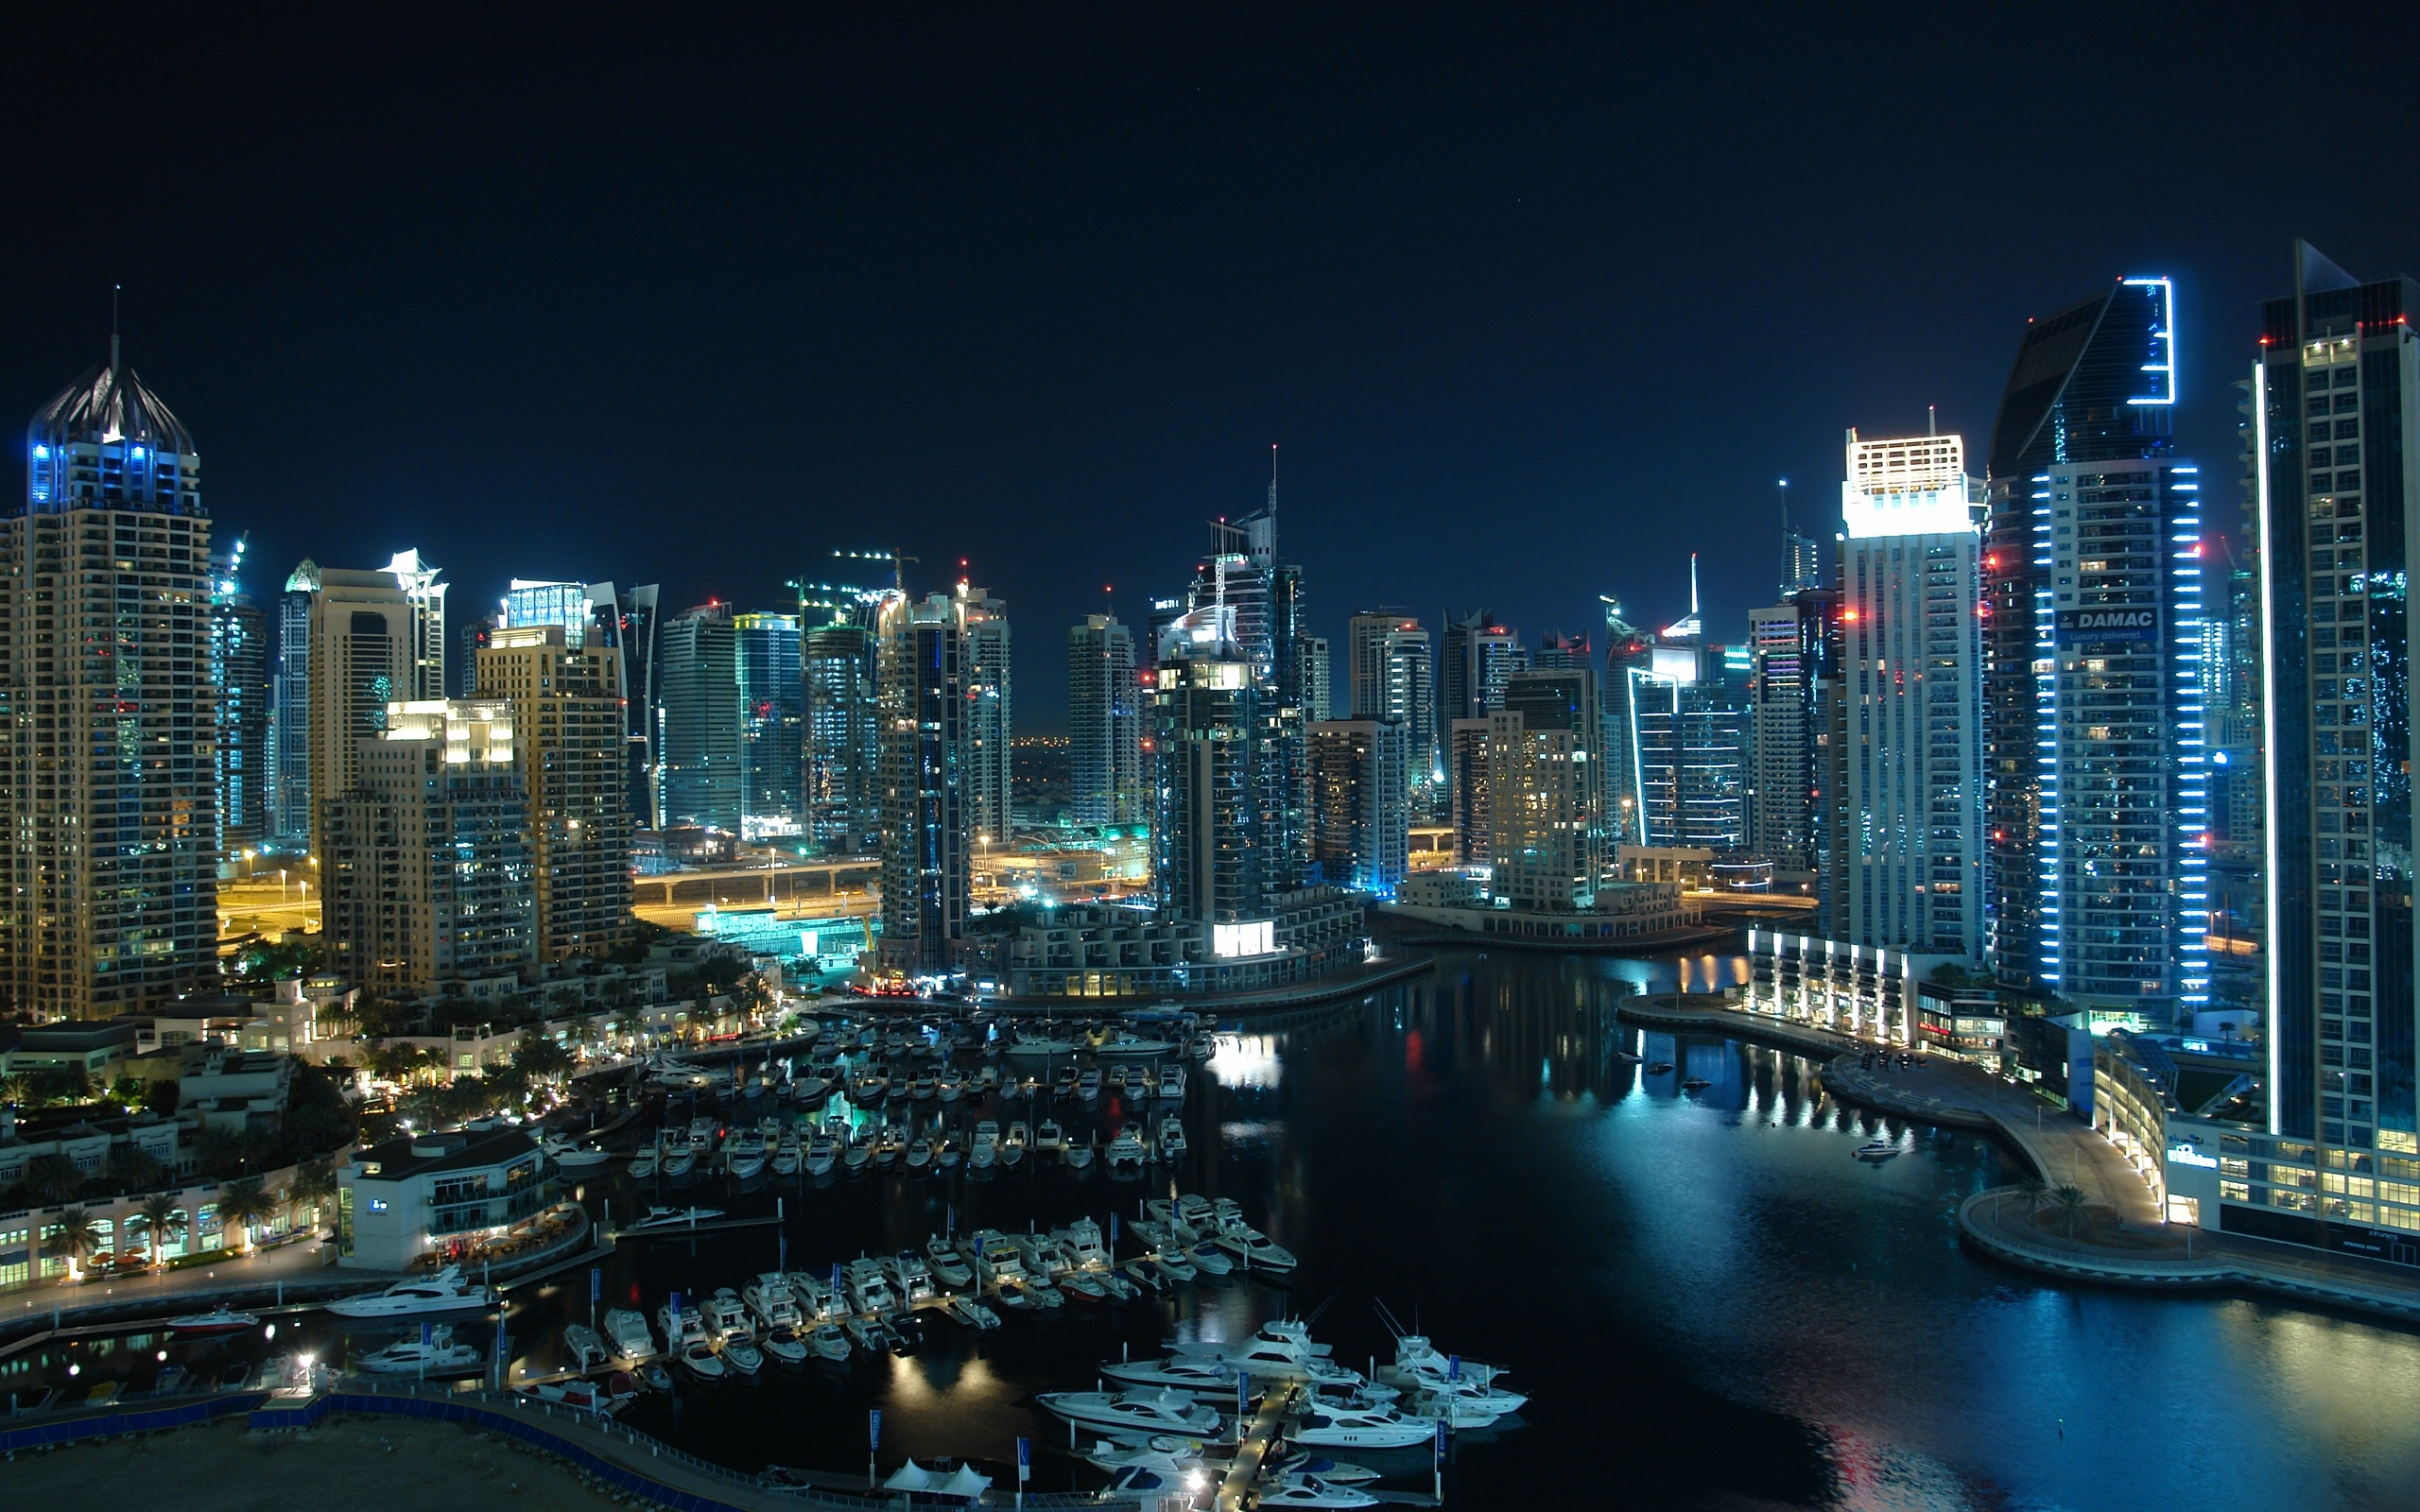 Amazing Dubai Marina Mac wallpaper allmacwallpapercom 2560x1600